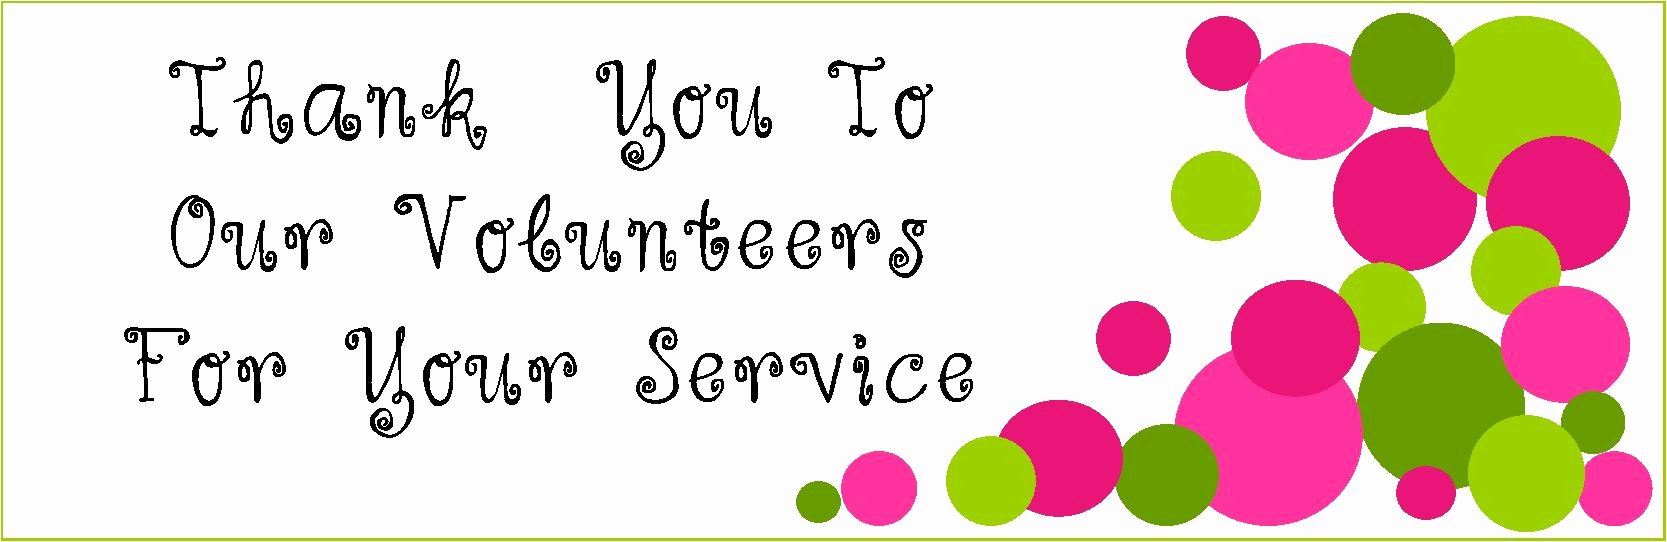 Thank You for Volunteering Inspirational Thank You for Volunteering Pictures Preview Image In Ie9